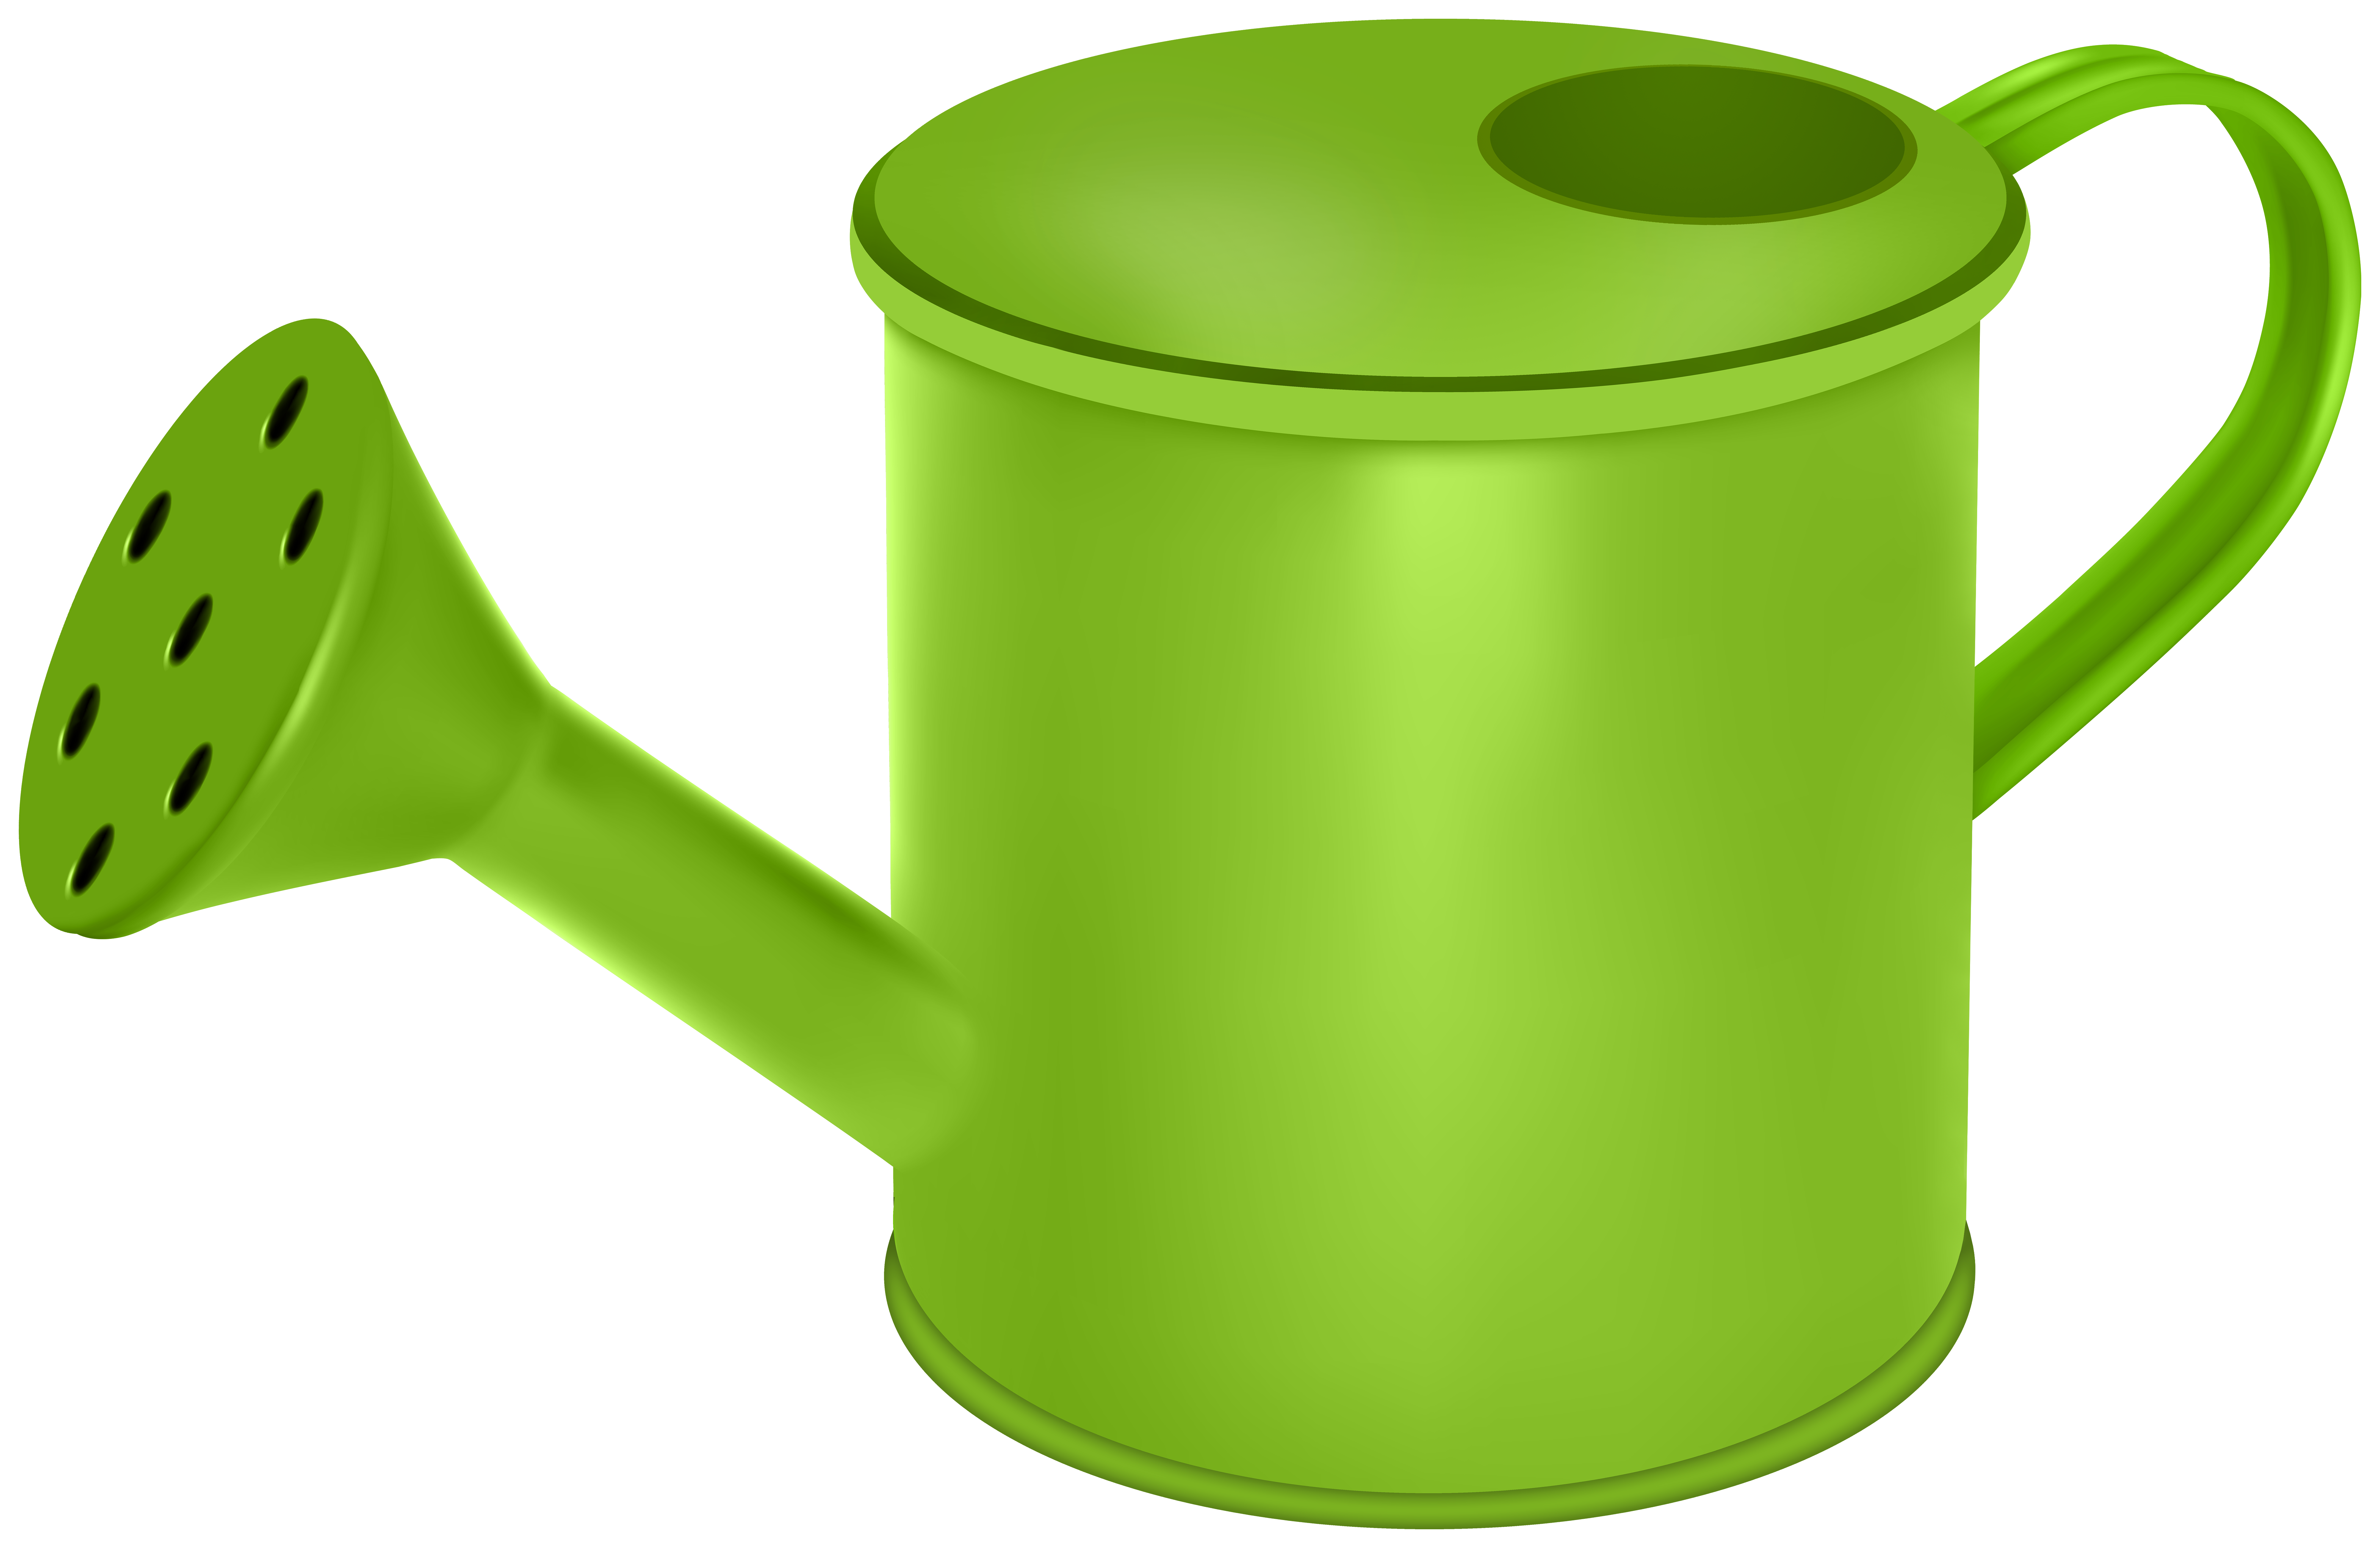 Watering can clipart transparen clip royalty free library Watering Can Green Transparent Image | Gallery Yopriceville ... clip royalty free library